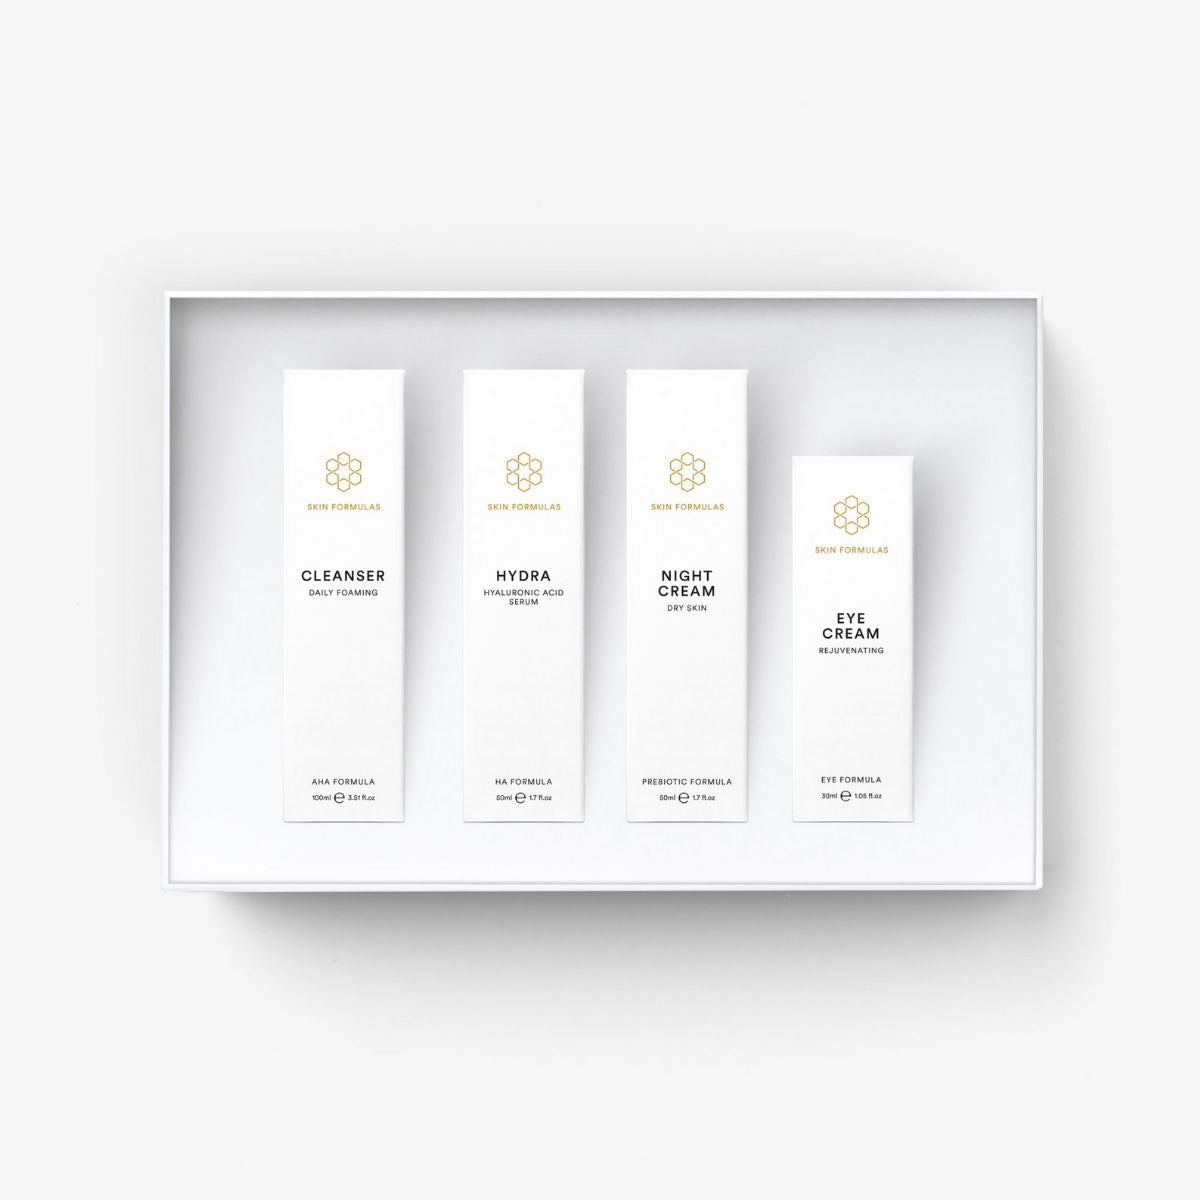 Skin Formulas Luxurious Essentials Set - Normal To Oily Skin - Daily Foaming, Hydra, Night Oil & Eye